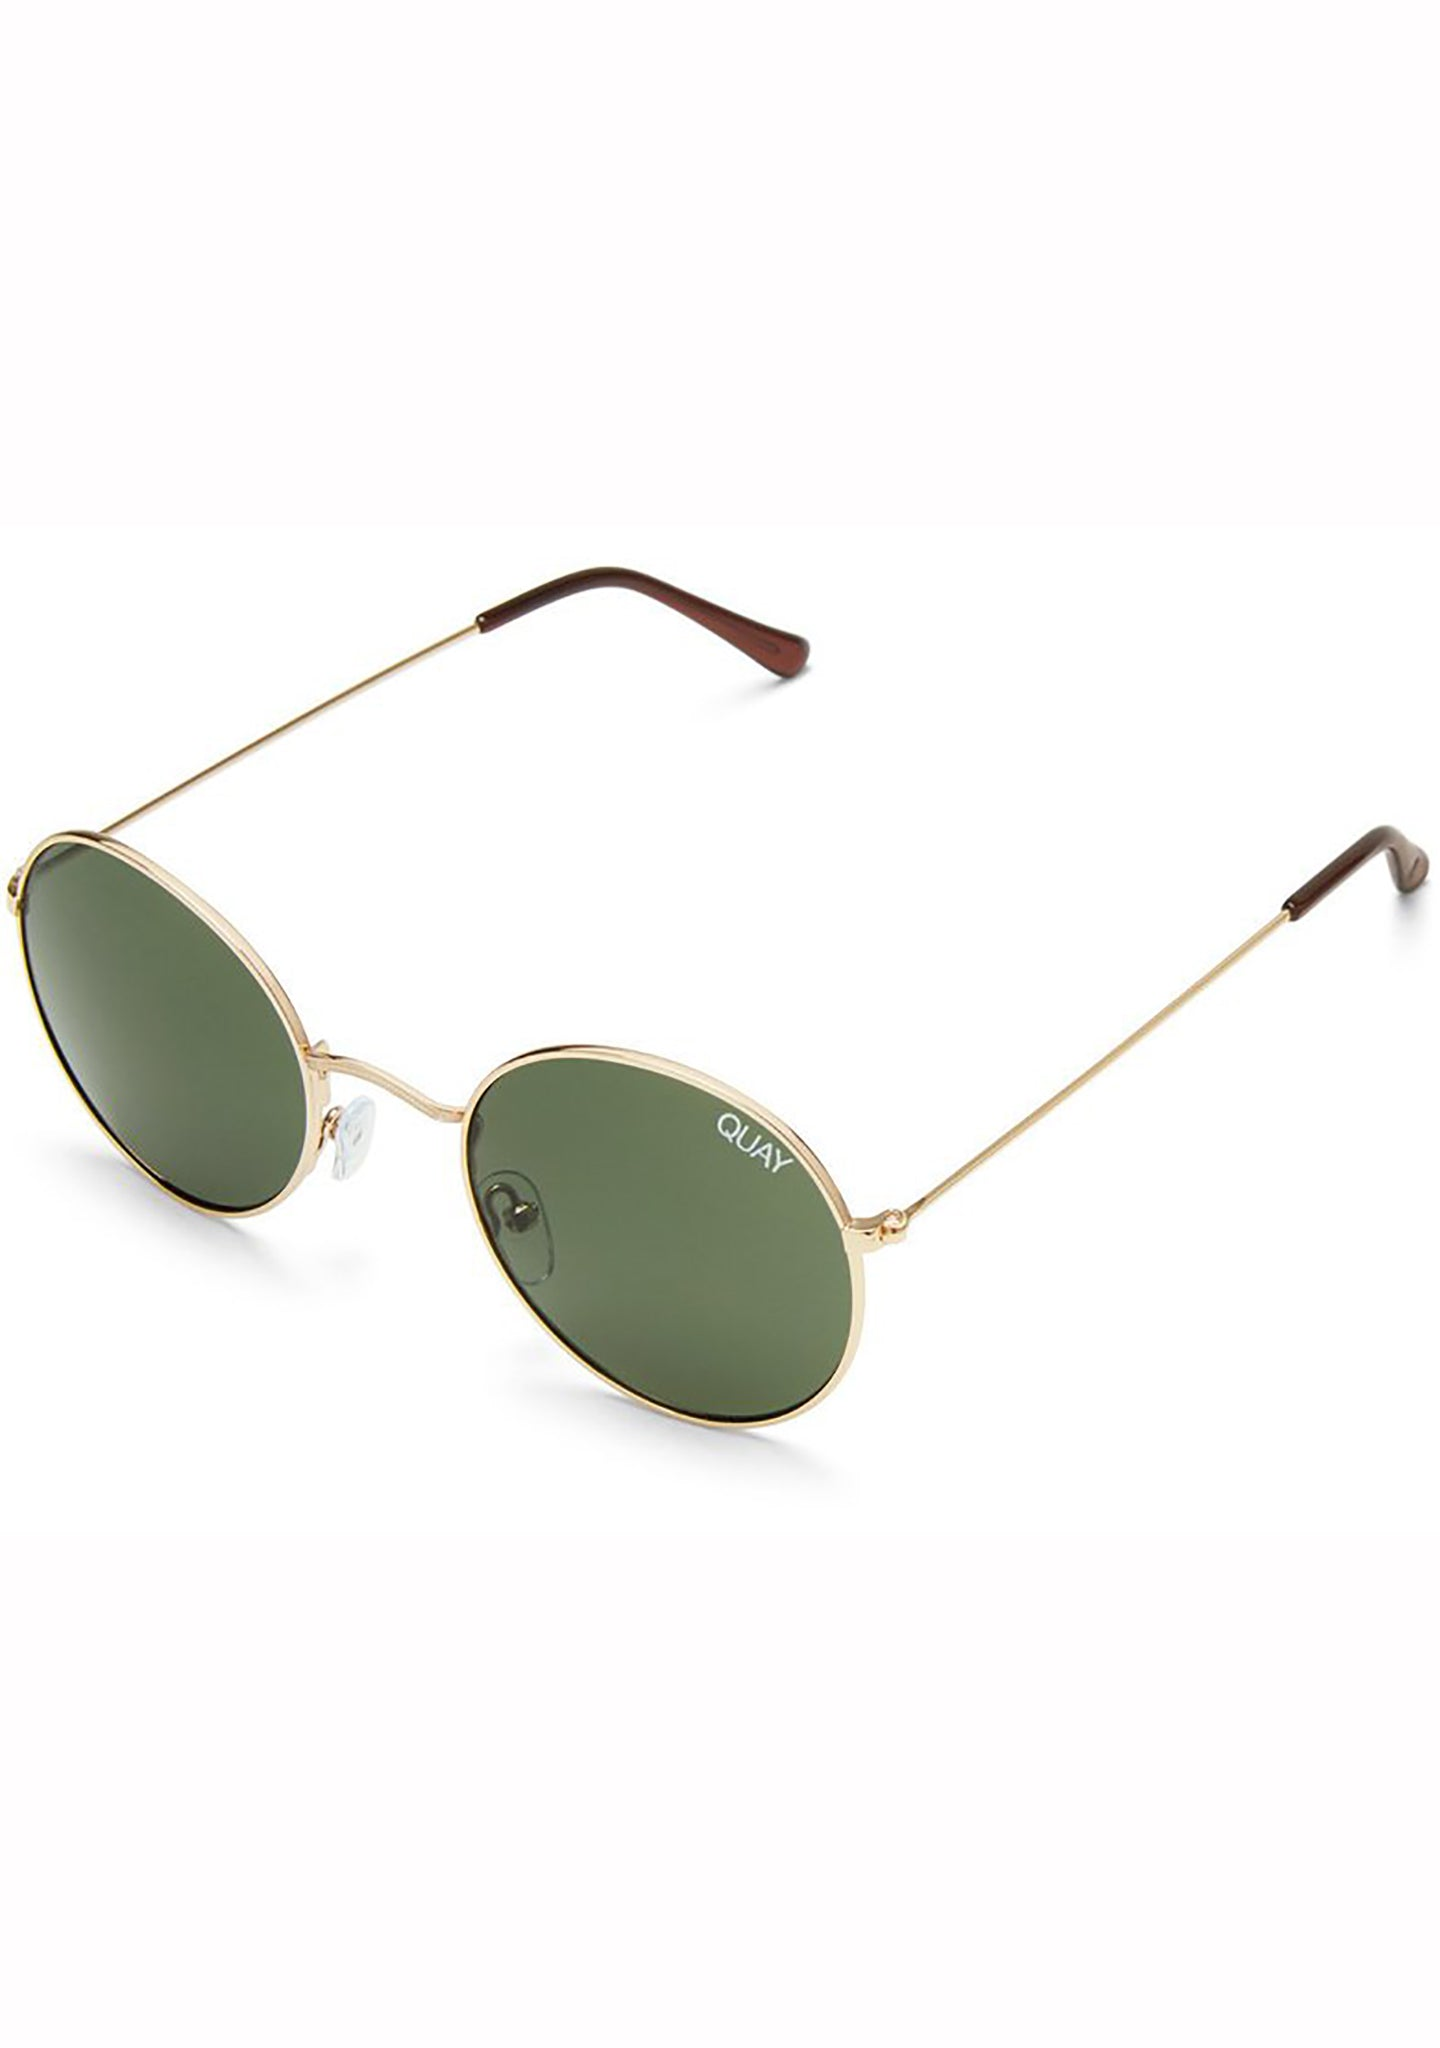 Quay Australia Mod Star Sunglasses in Gold